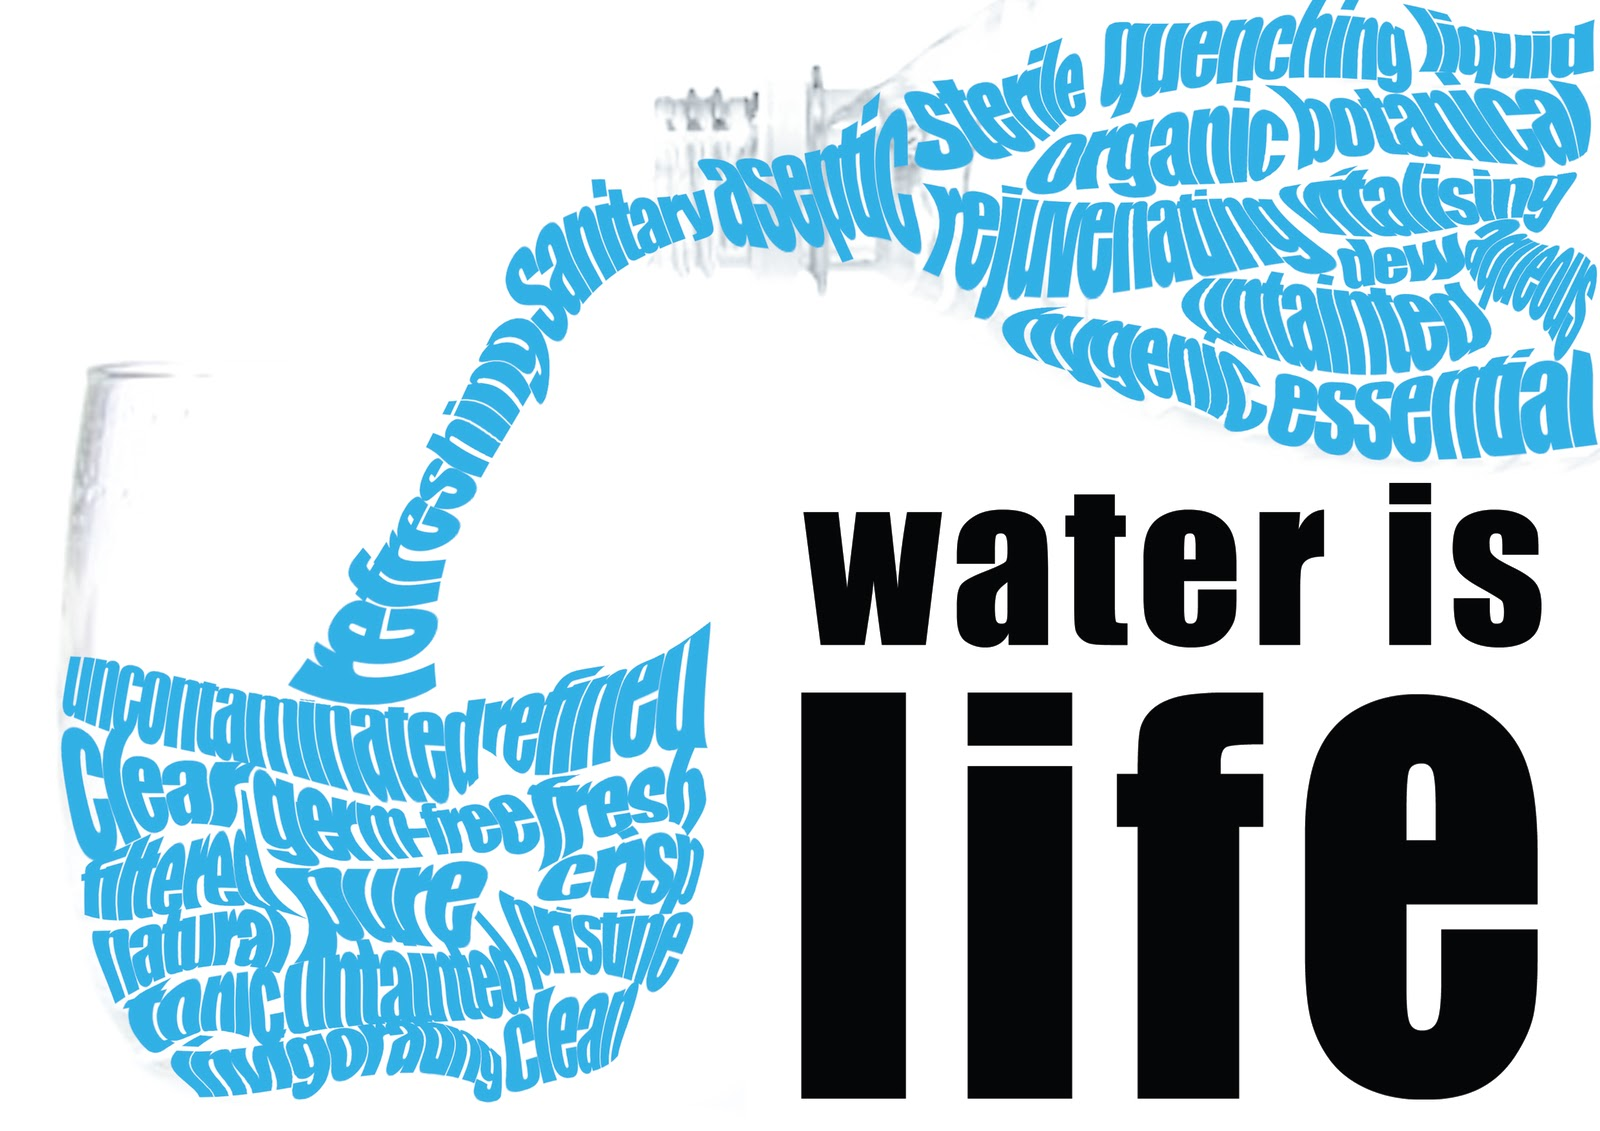 essay on water marine wealth The immediate effects of water pollution can be seen in water bodies and the animal and plant life that analysis essay - water pollution (marine pollution.